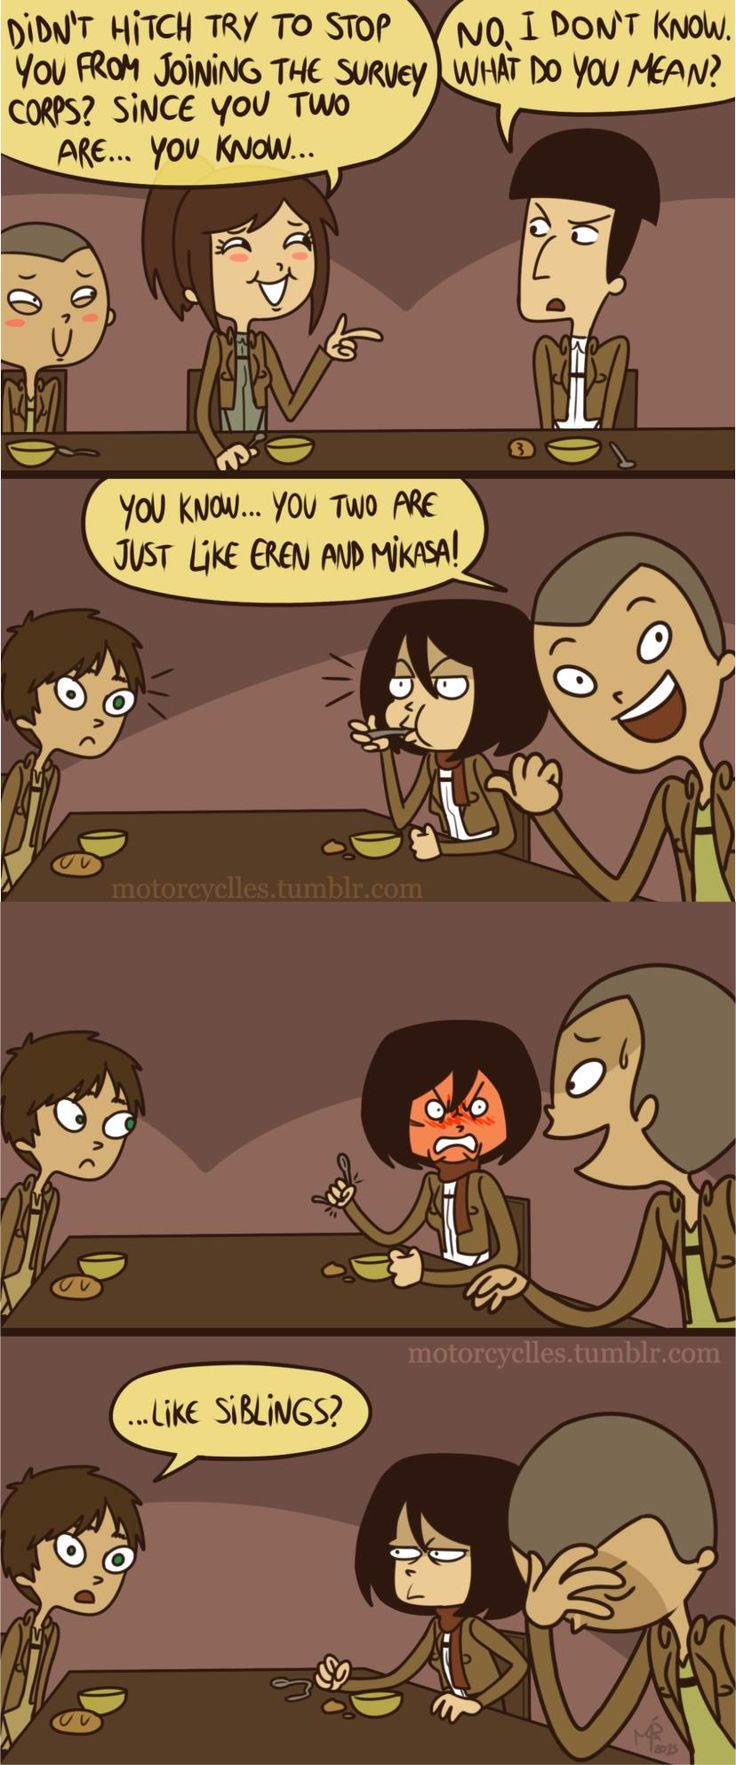 Pin by Hanny Fadia on Attack on Titan | Attack on titan comic, Attack on titan anime, Attack on ...